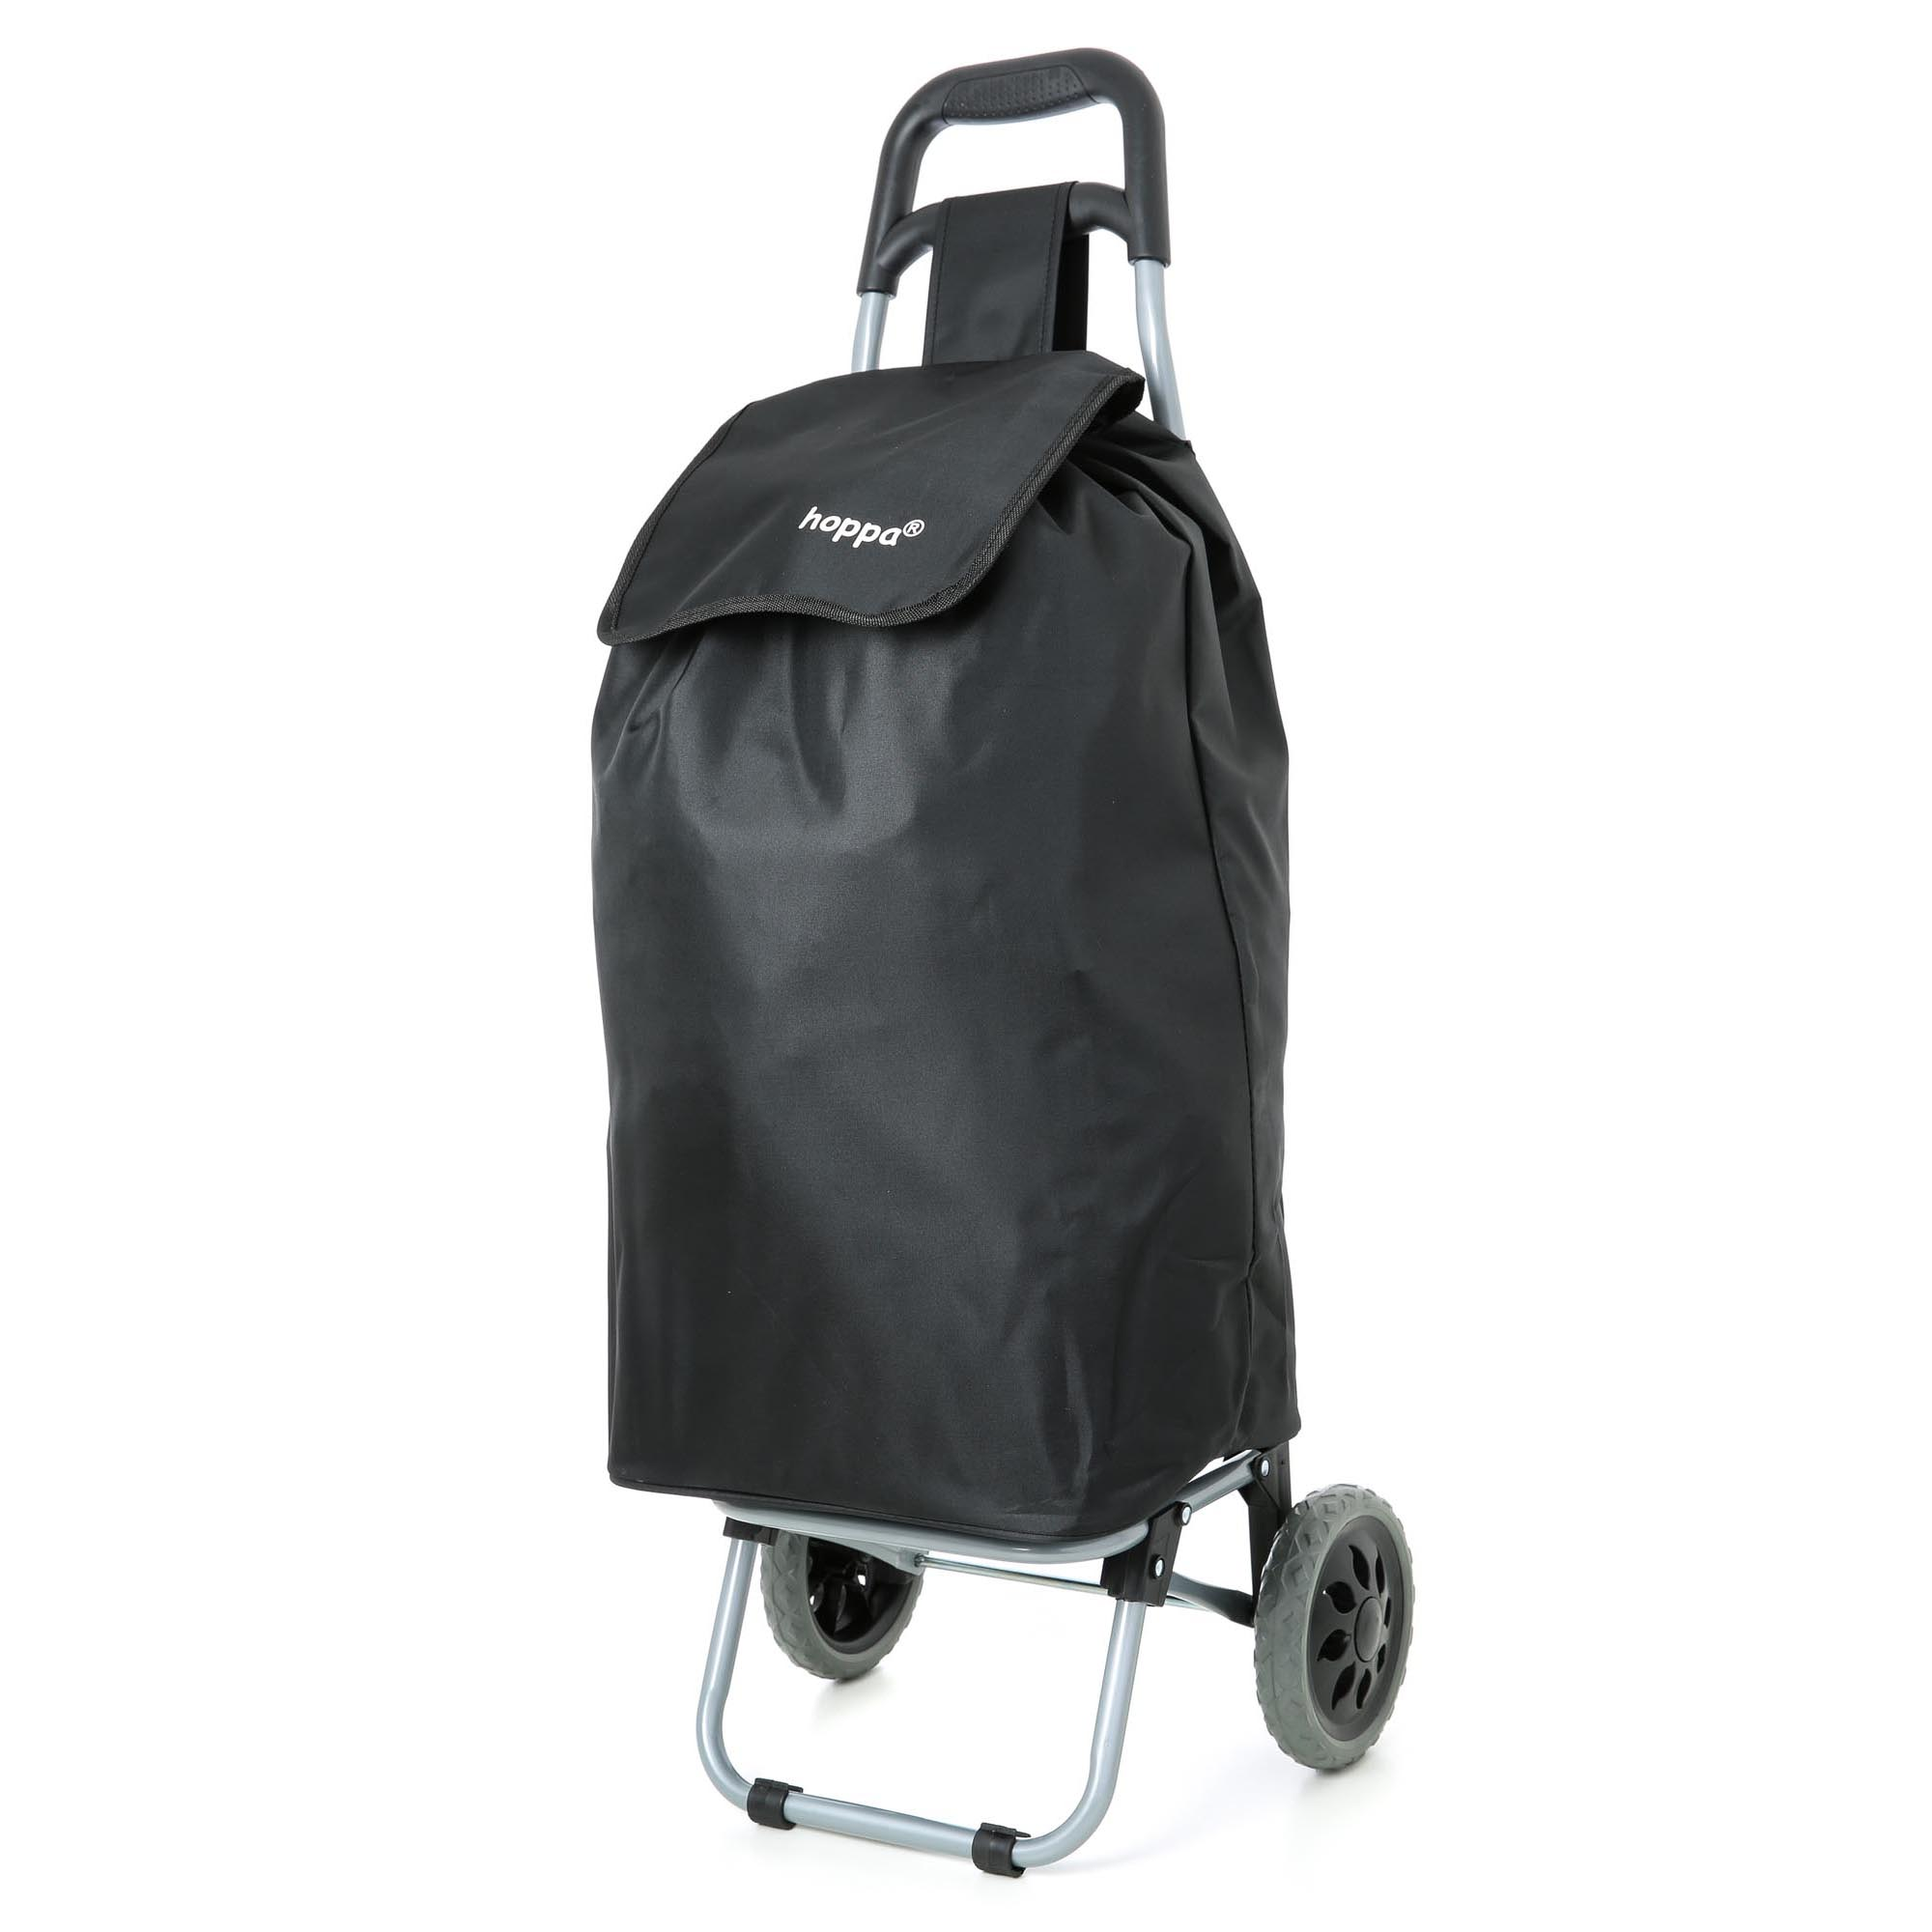 Hoppa Lightweight Shopping Trolley Folding 2 Wheel Large Capacity